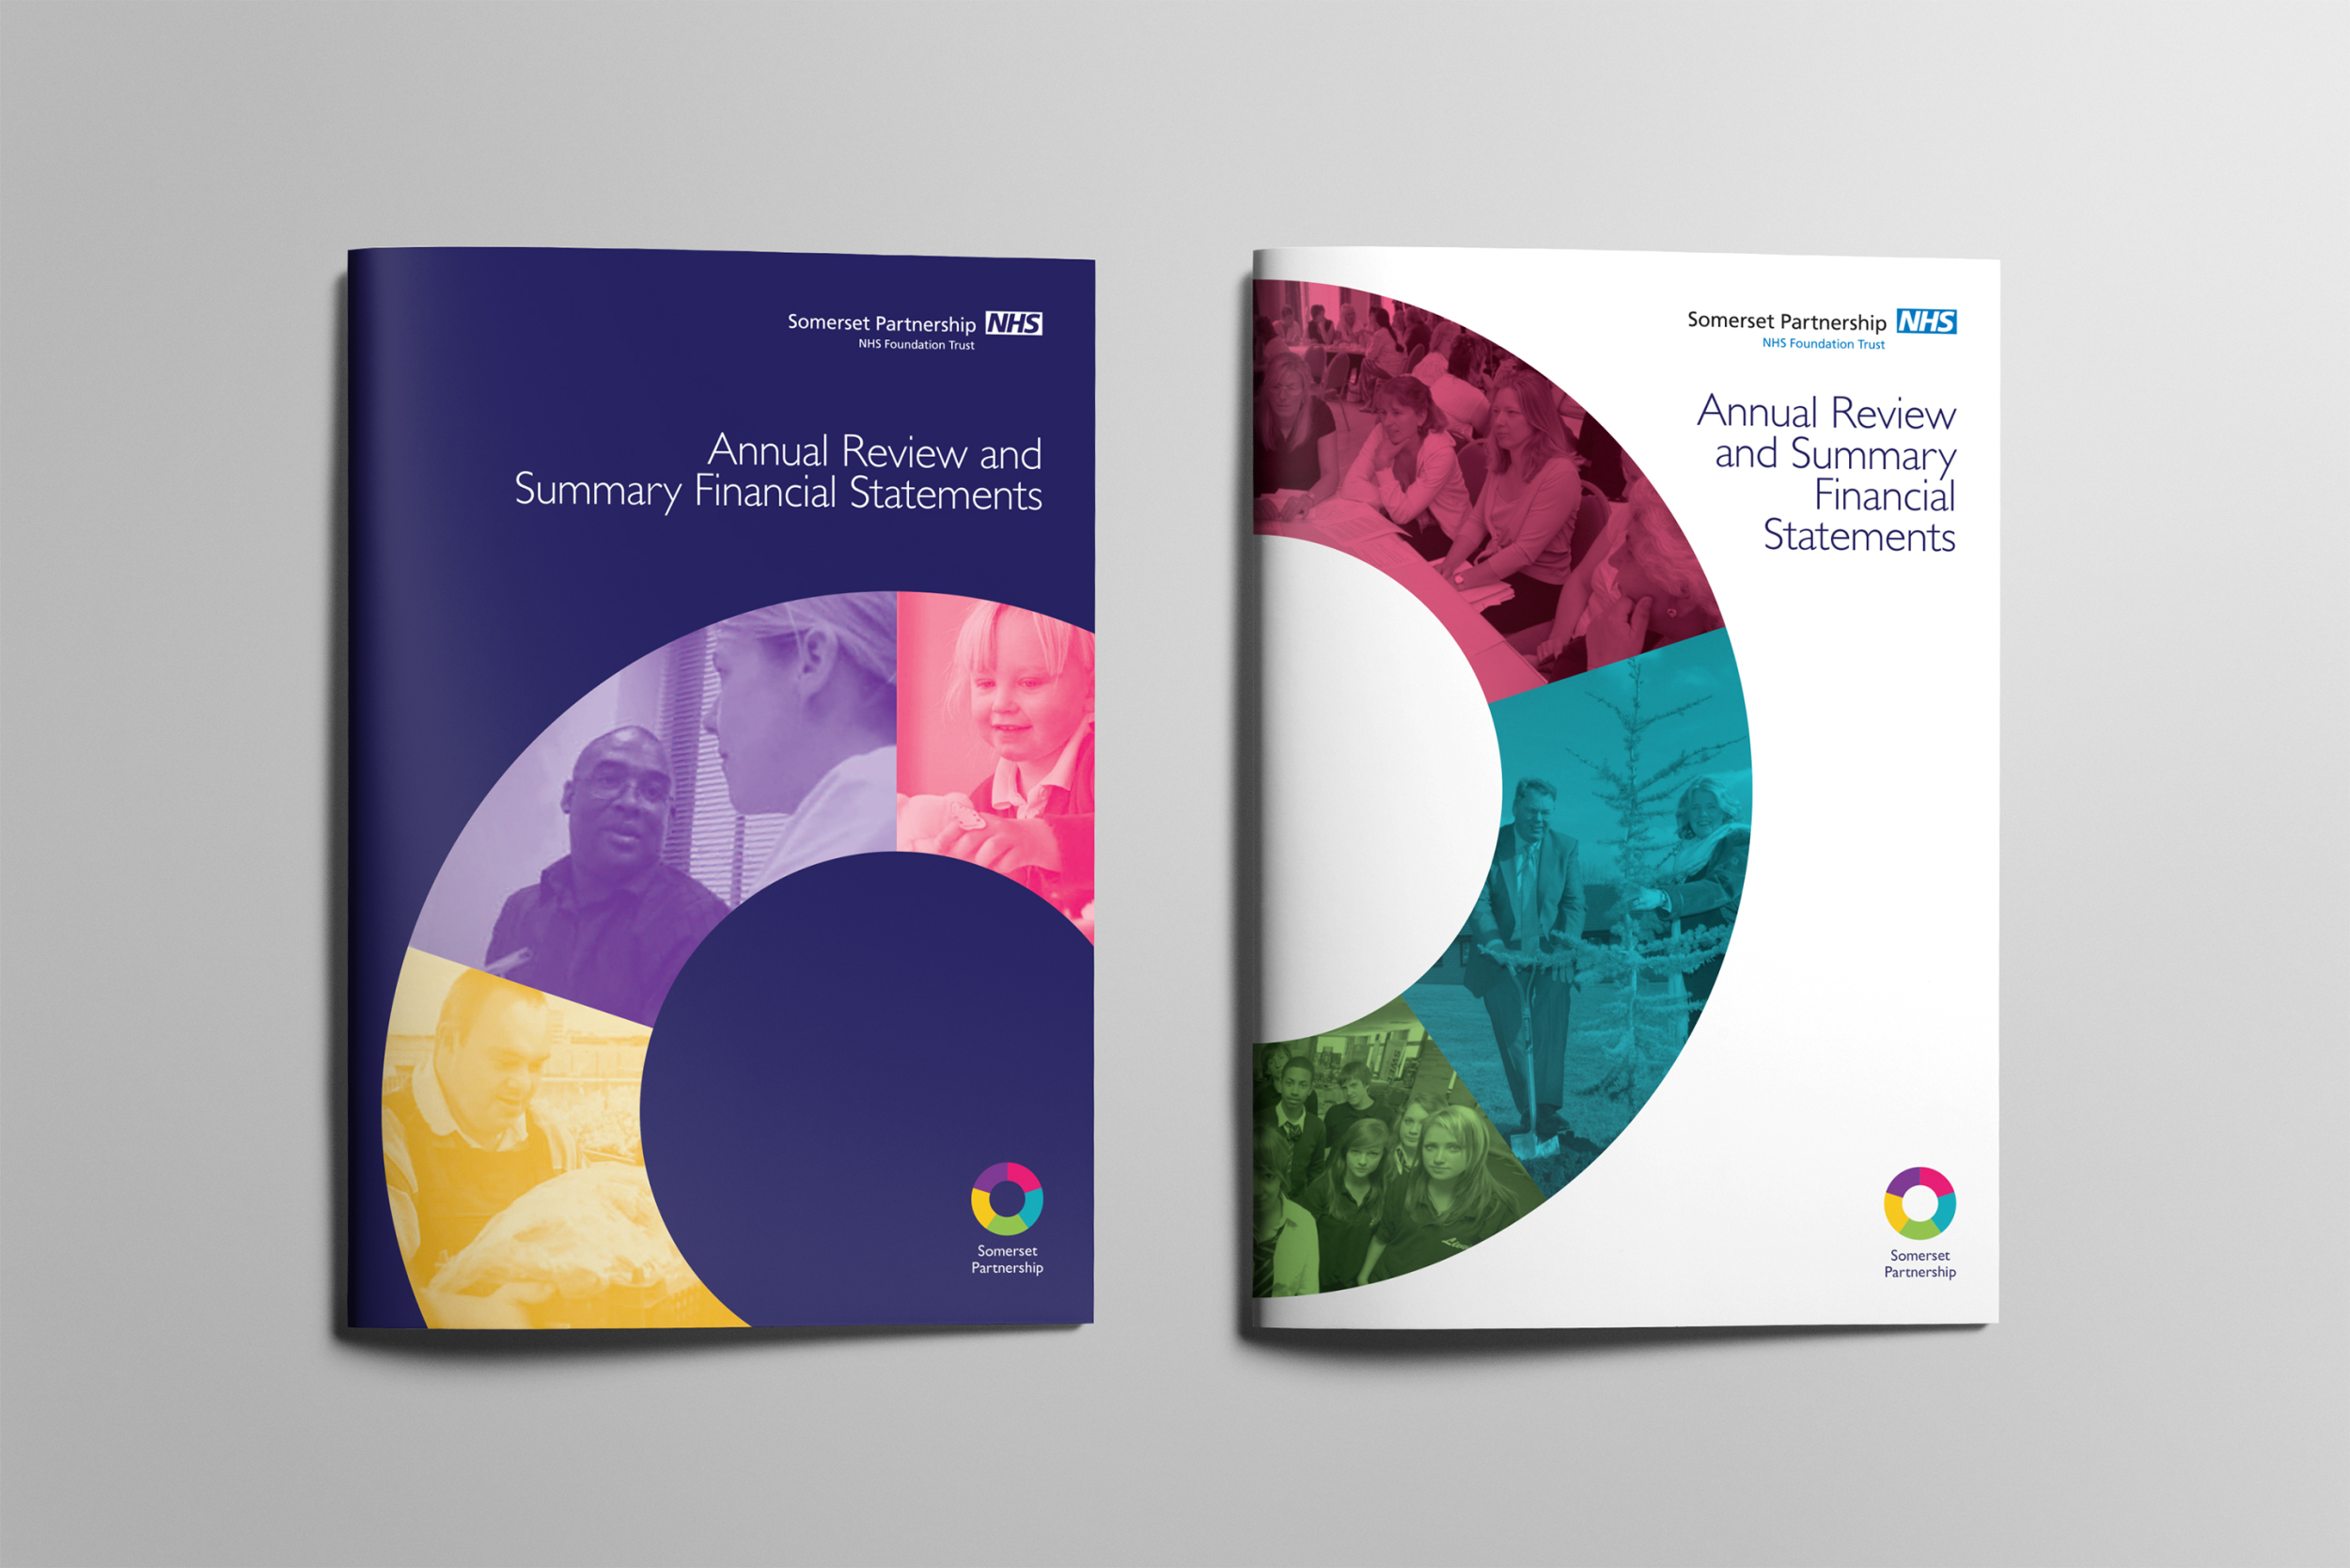 Somerset Partnership Annual Reports